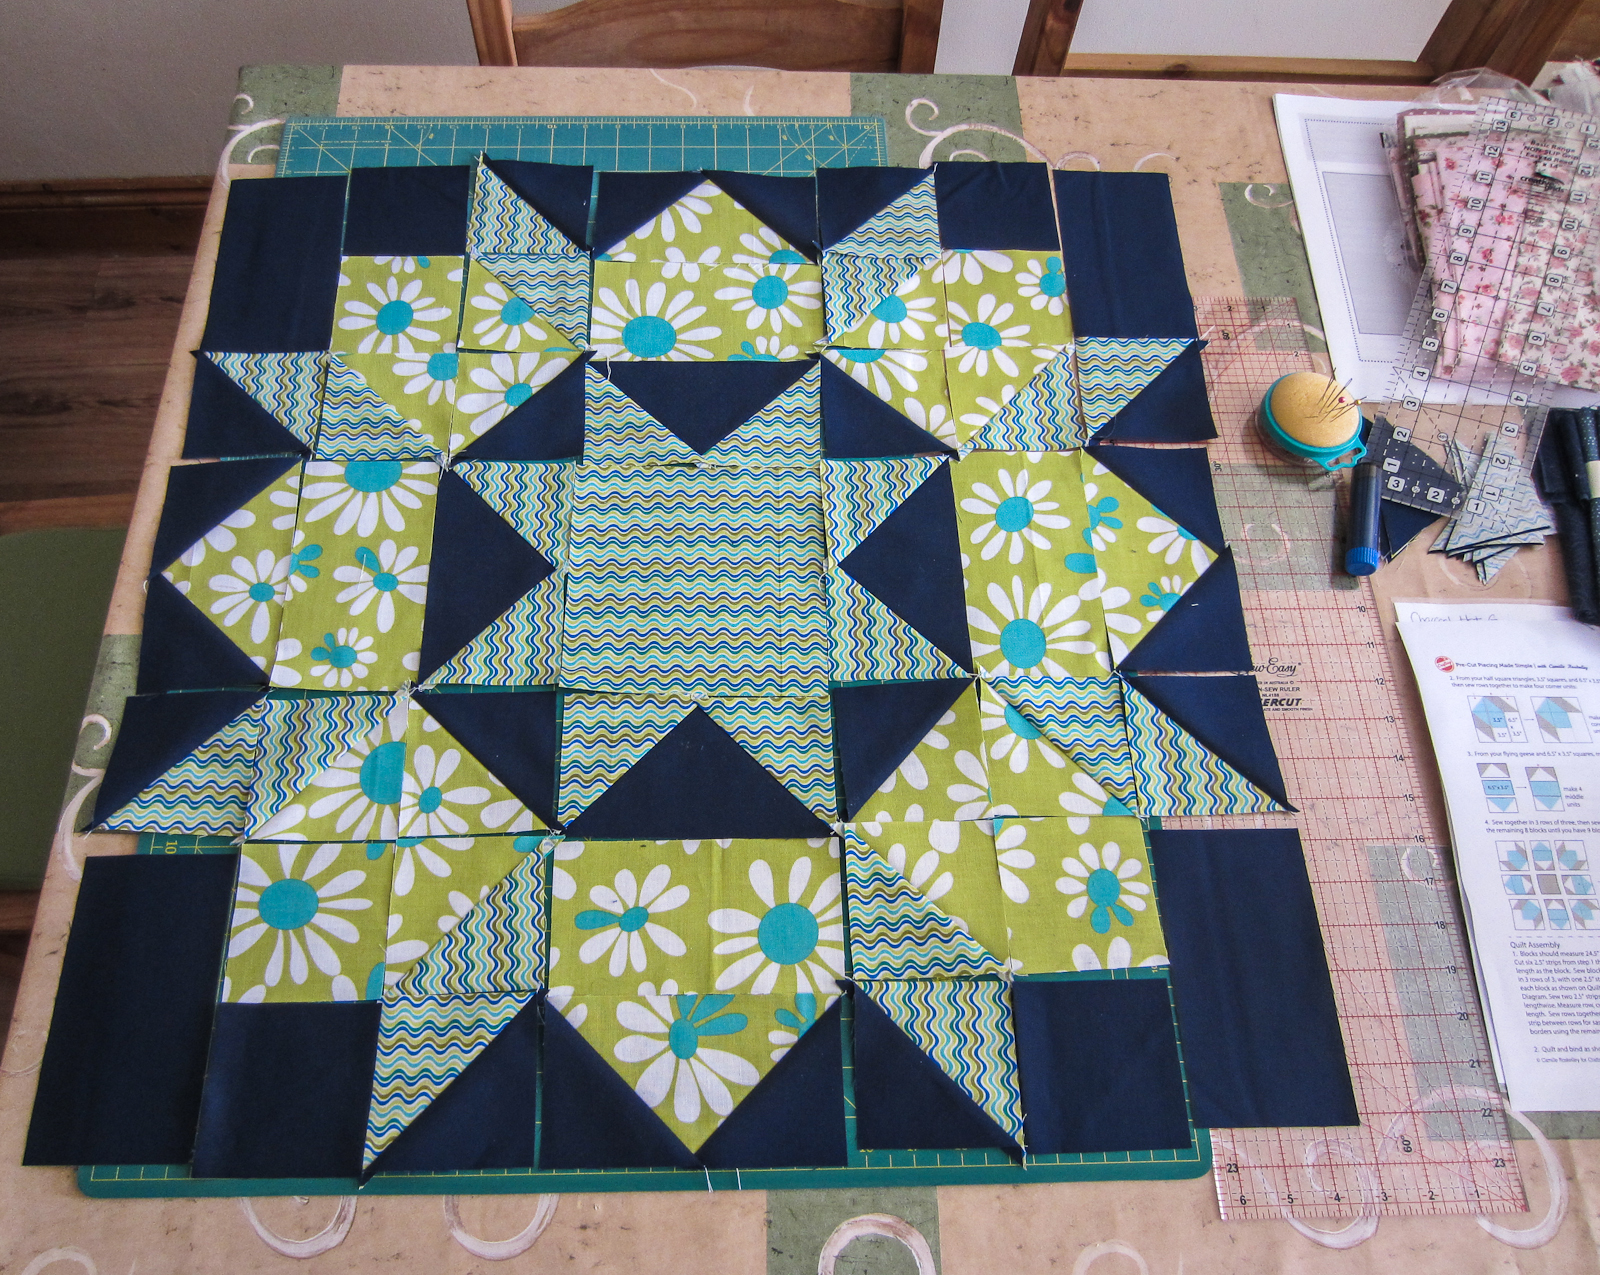 Camille Found It In An Antique Quilt Resized Up To A 24 Block And Simplified The Piecing Make From Squares Half Square Triangles Flying